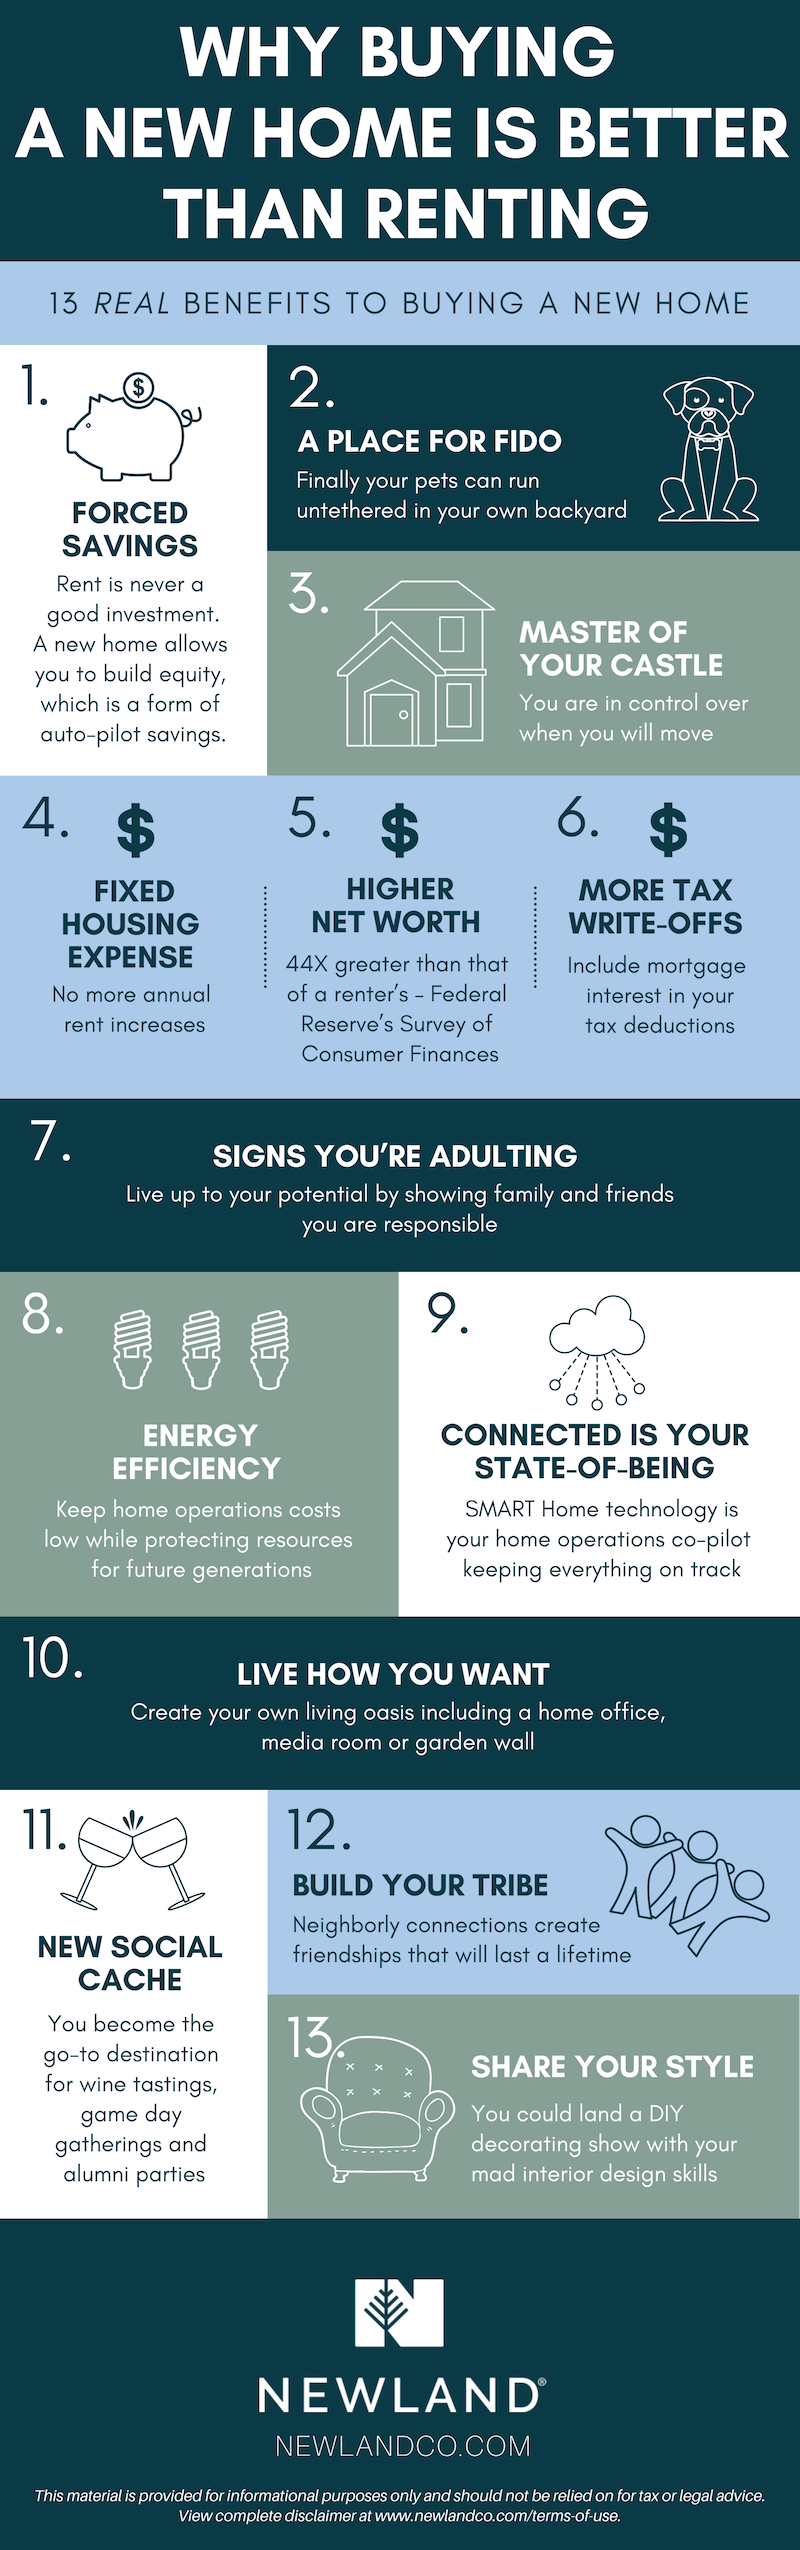 13 Reason Why Buying a New Home is Better than Renting Infographic